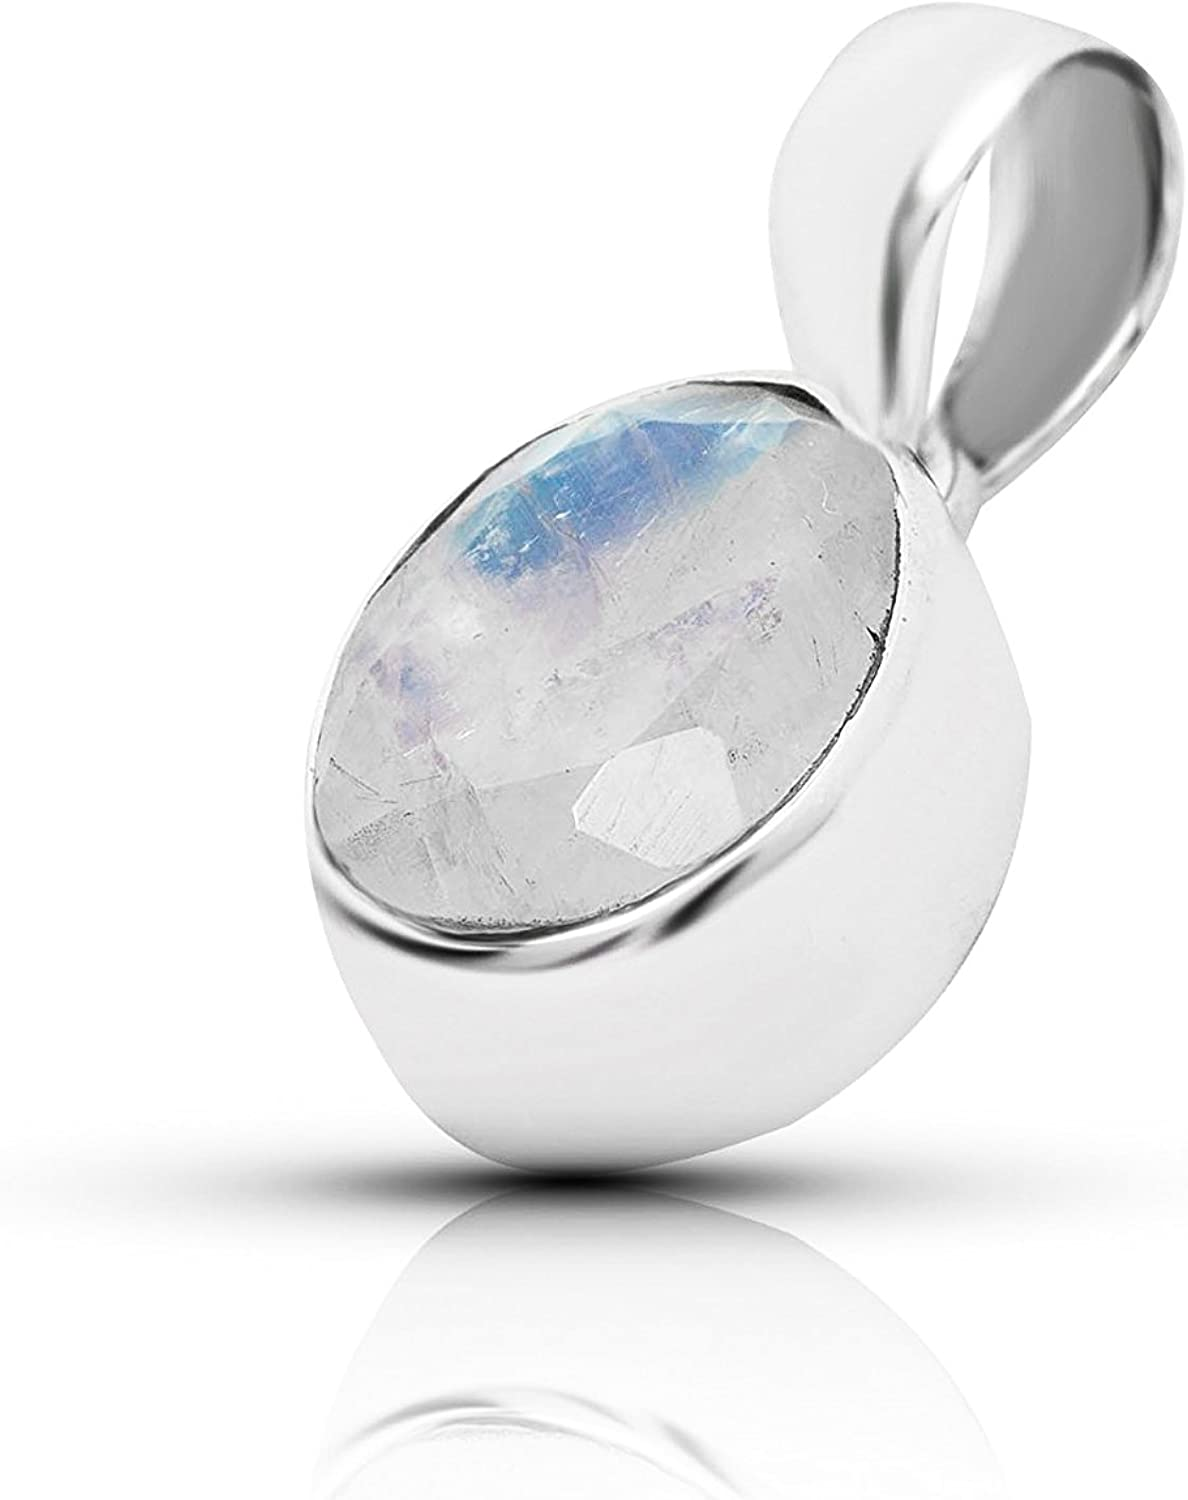 Moonstone Faceted Pear Shape Pendant 26-28 mm Hot Selling Chocolate Moonstone Sterling Silver Bezel Connector Pendant SSC124